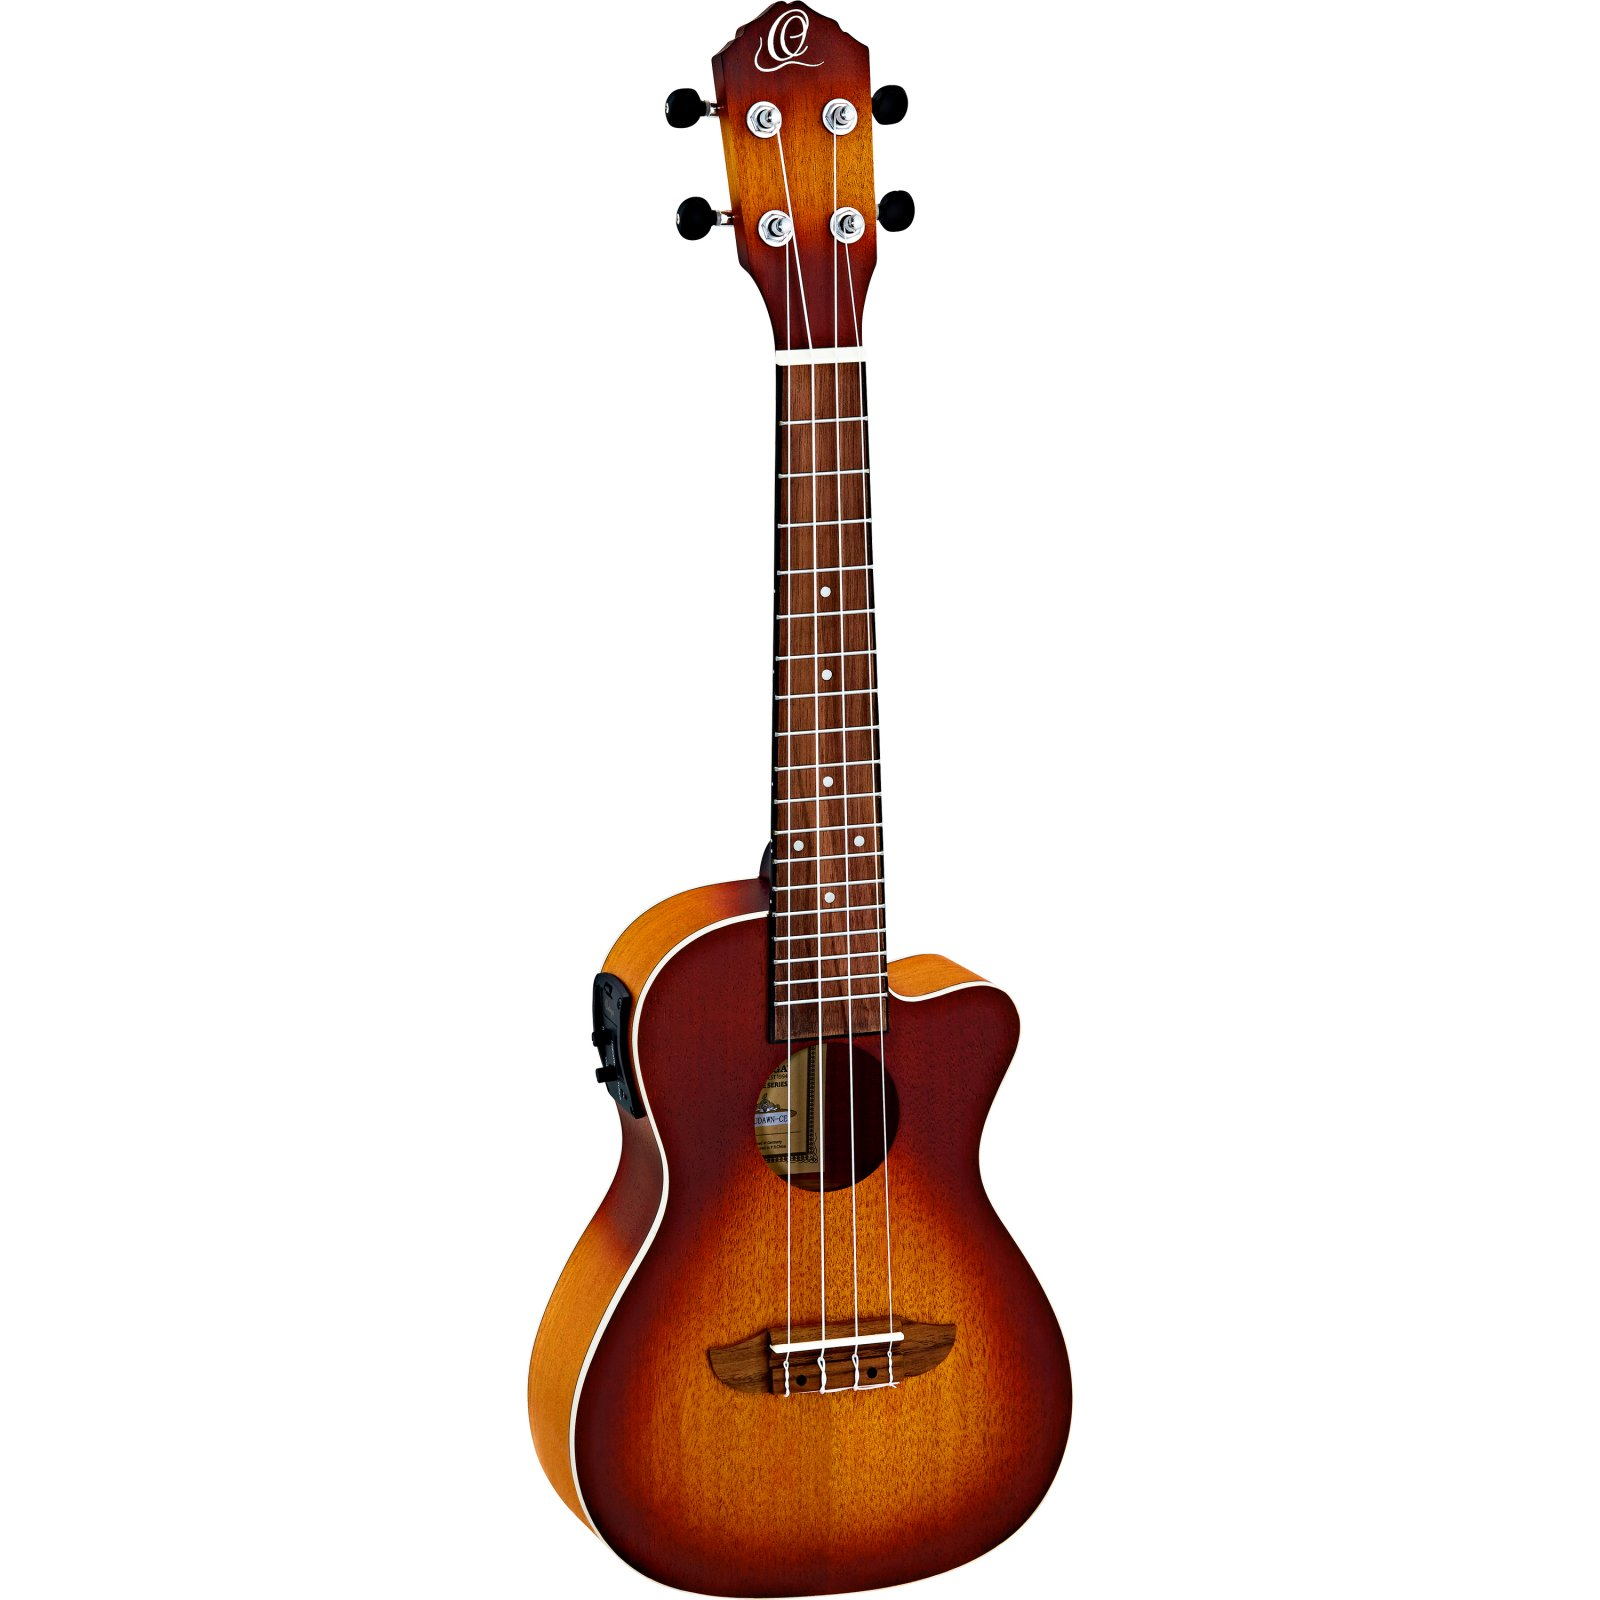 Ortega Earth Series RUDAWN-CE Cutaway Electric Concert Ukulele